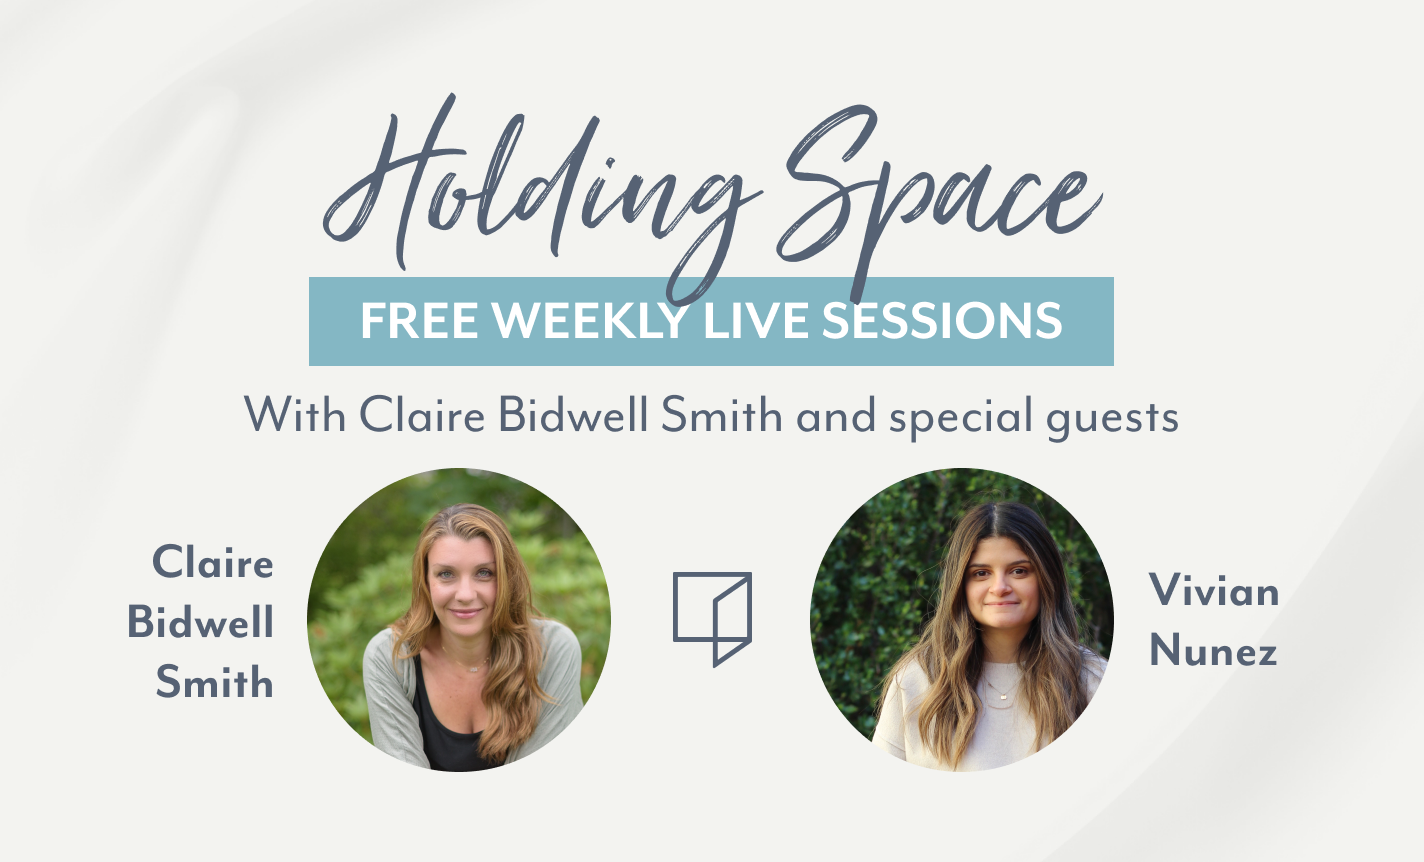 Holding Space with Claire Bidwell Smith and Vivian Nunez